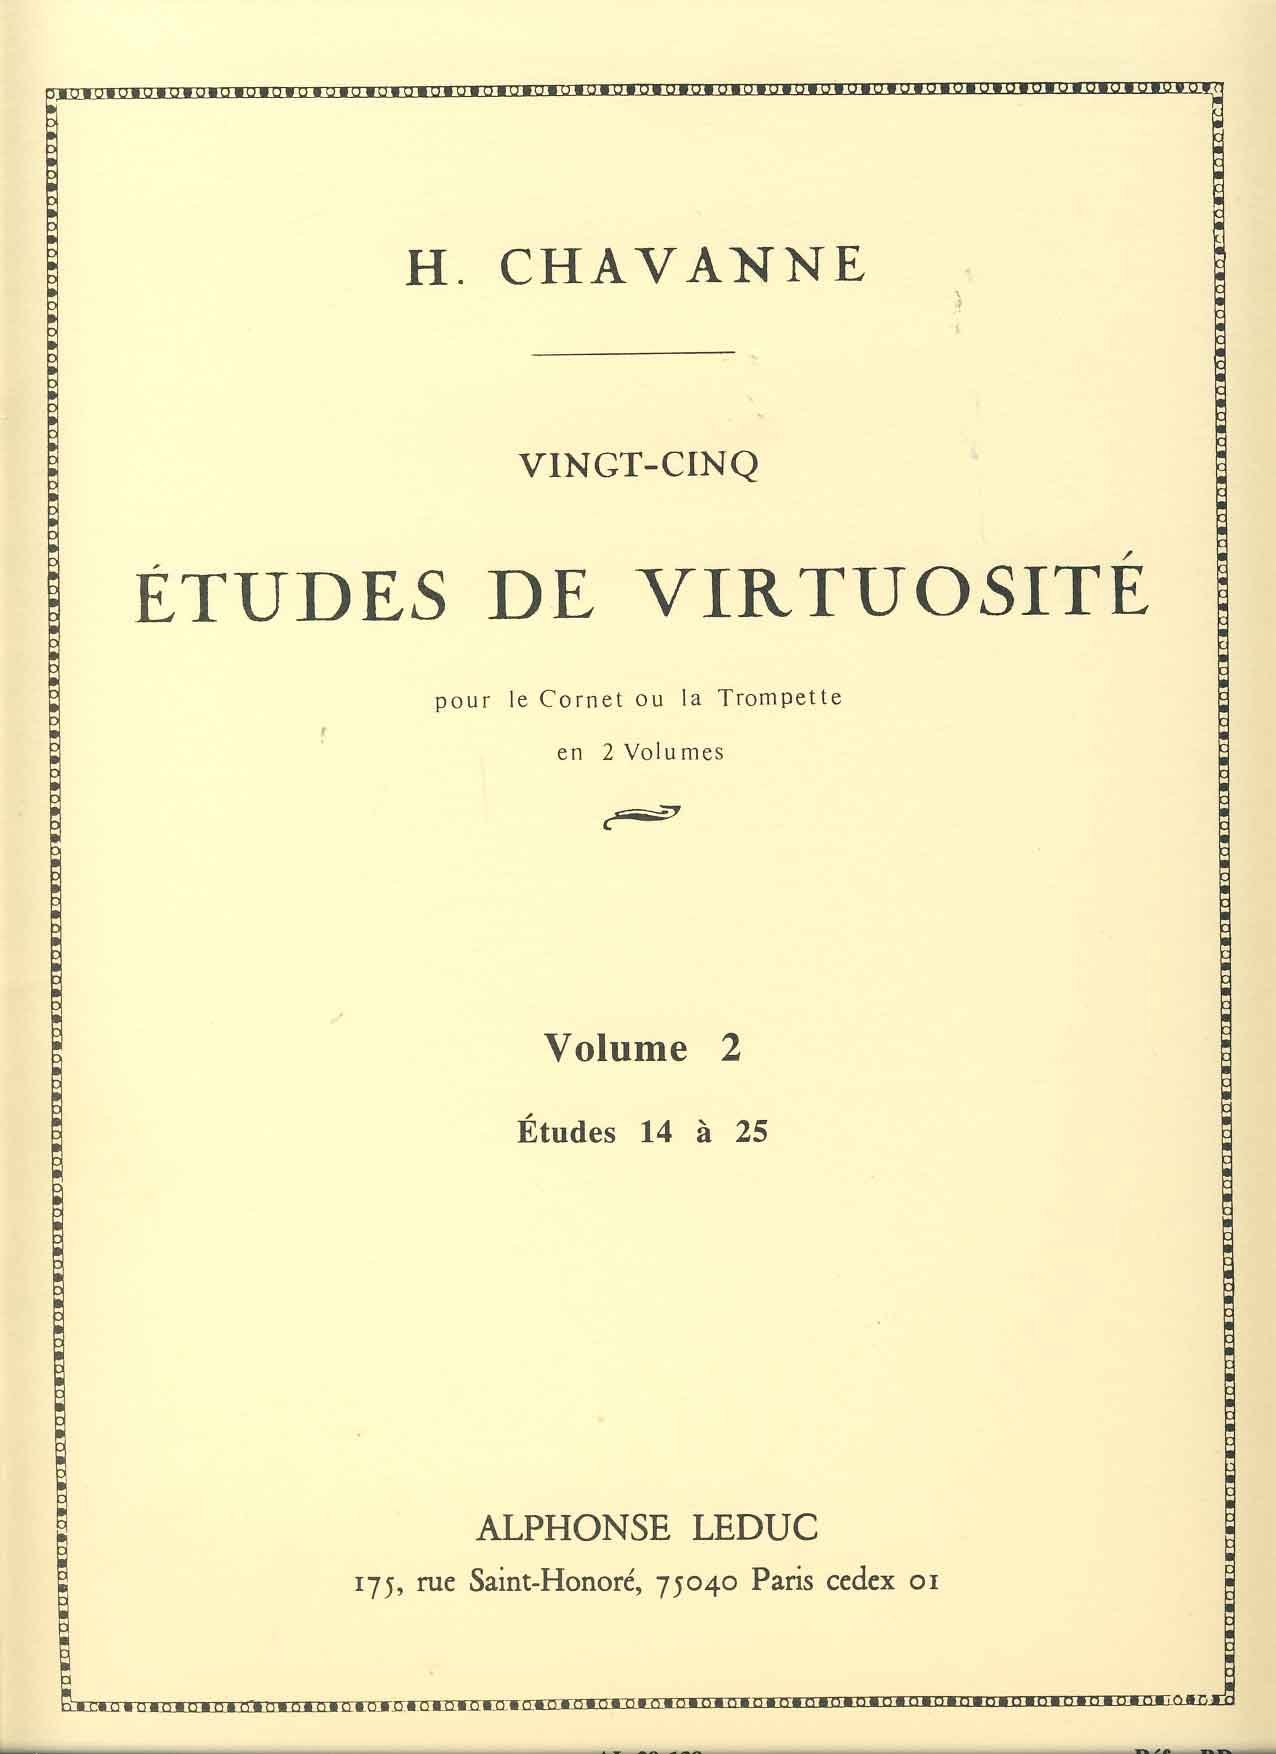 Download CHAVANNE H. - Estudios de Virtuosidad (25) Vol.2: nº 14 a 25 para Trompeta pdf epub